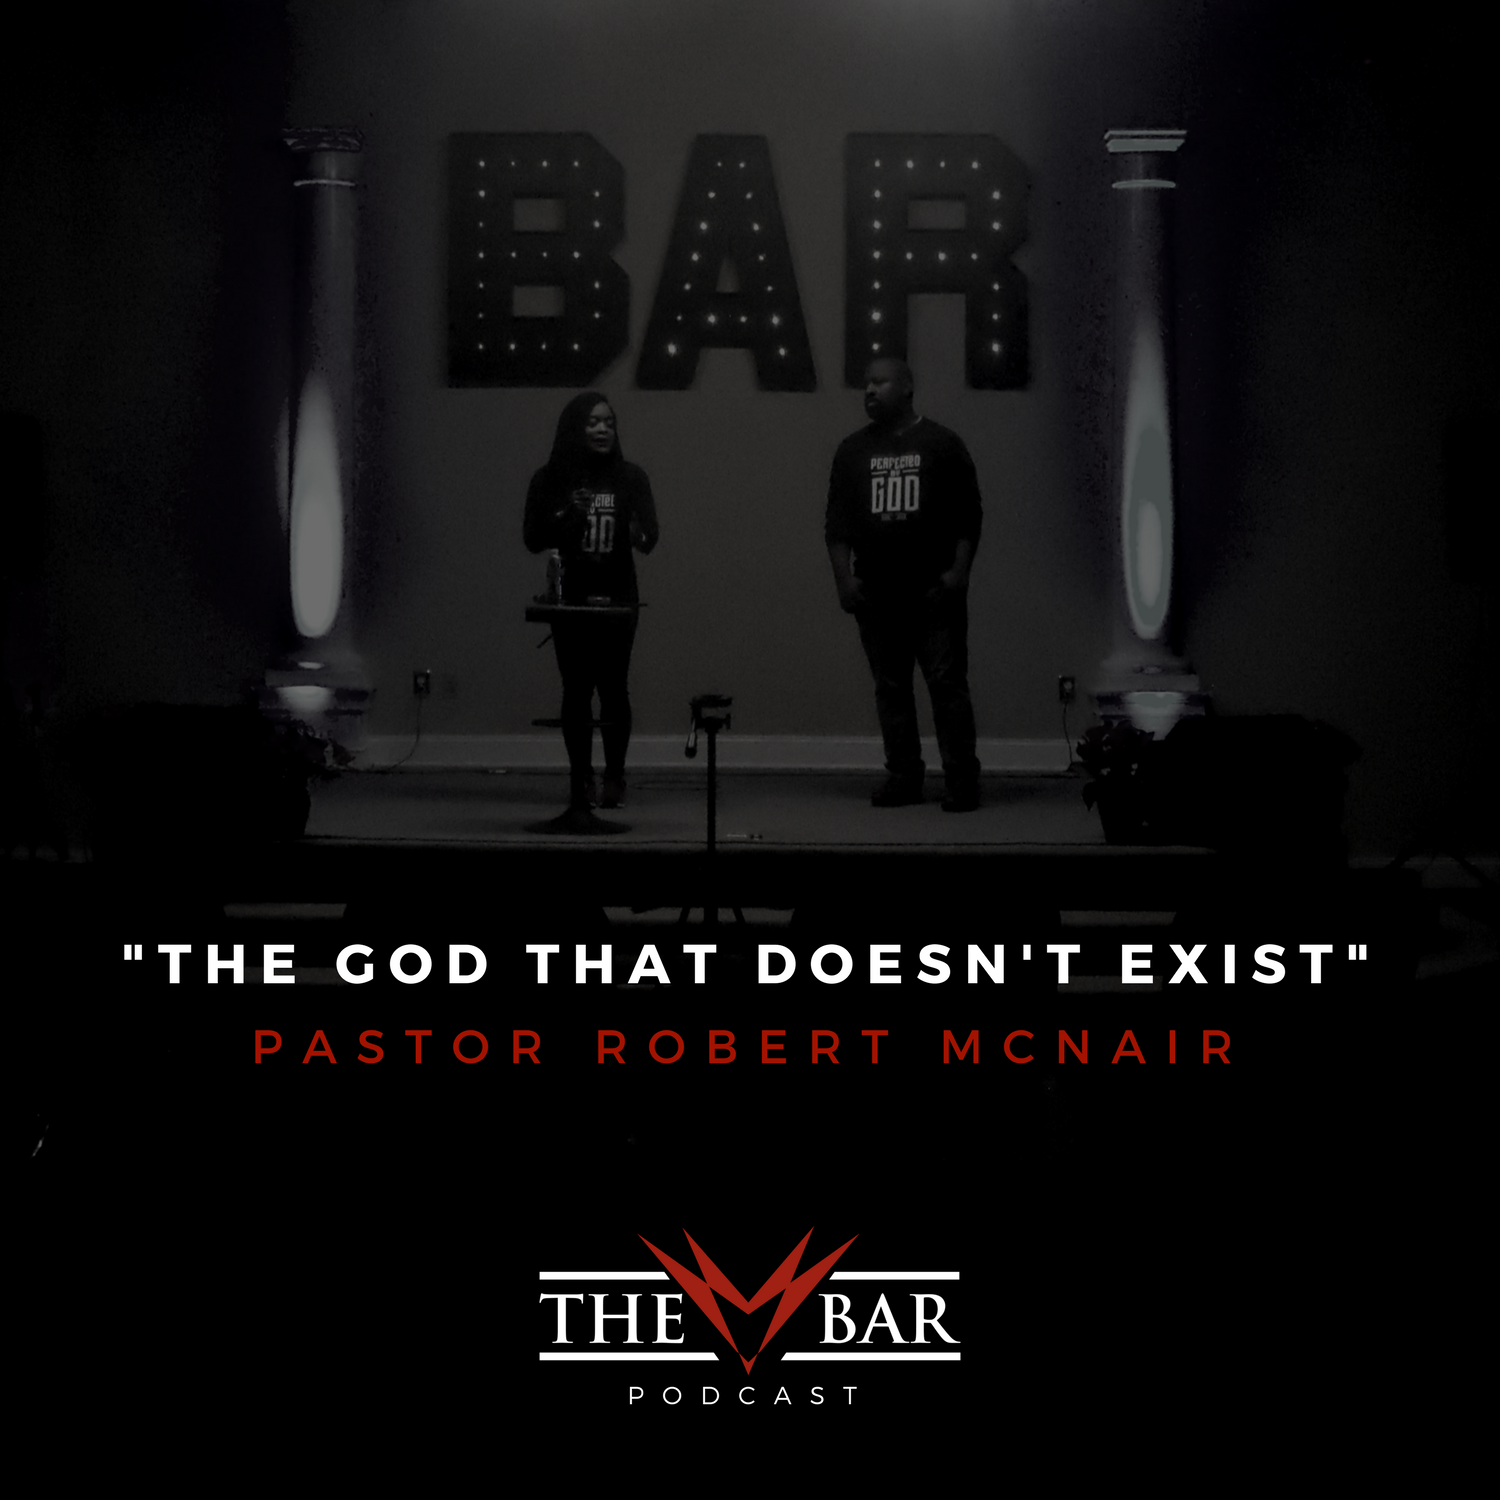 The-BAR-Podcast-The-God-That-Doesnt-Exist